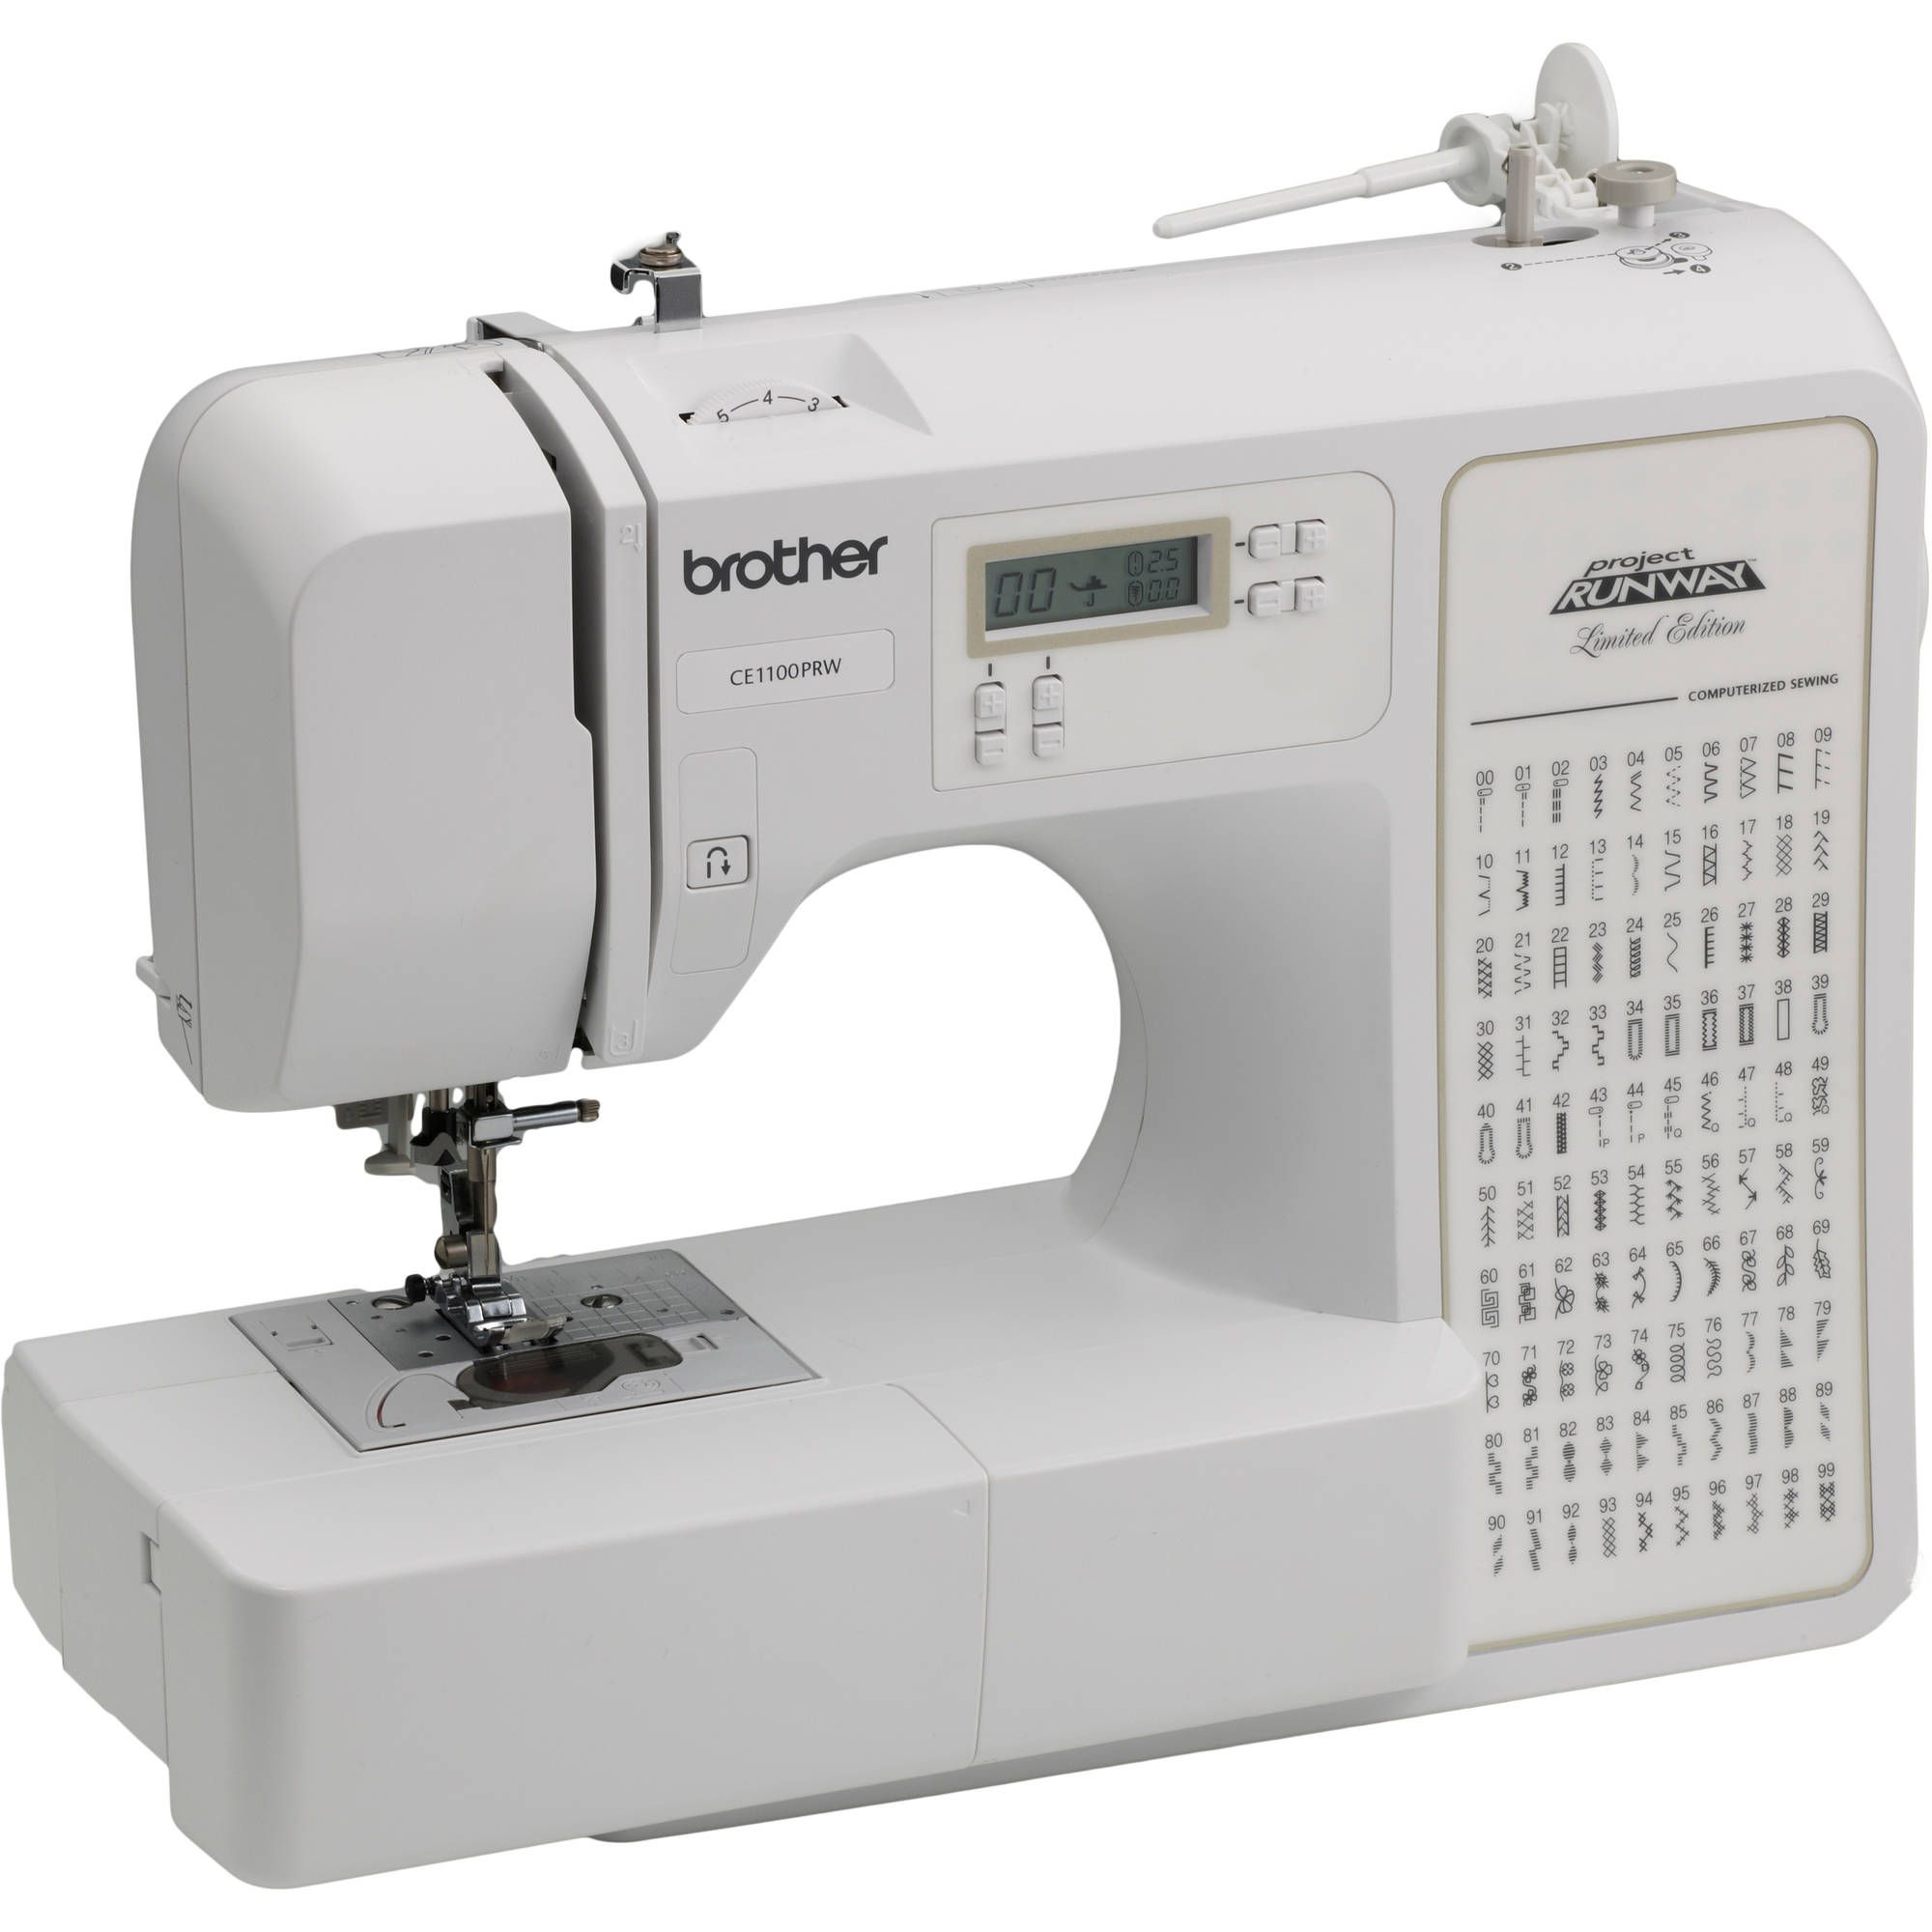 Sewing Machines Sewing Walmart Com With Images Project